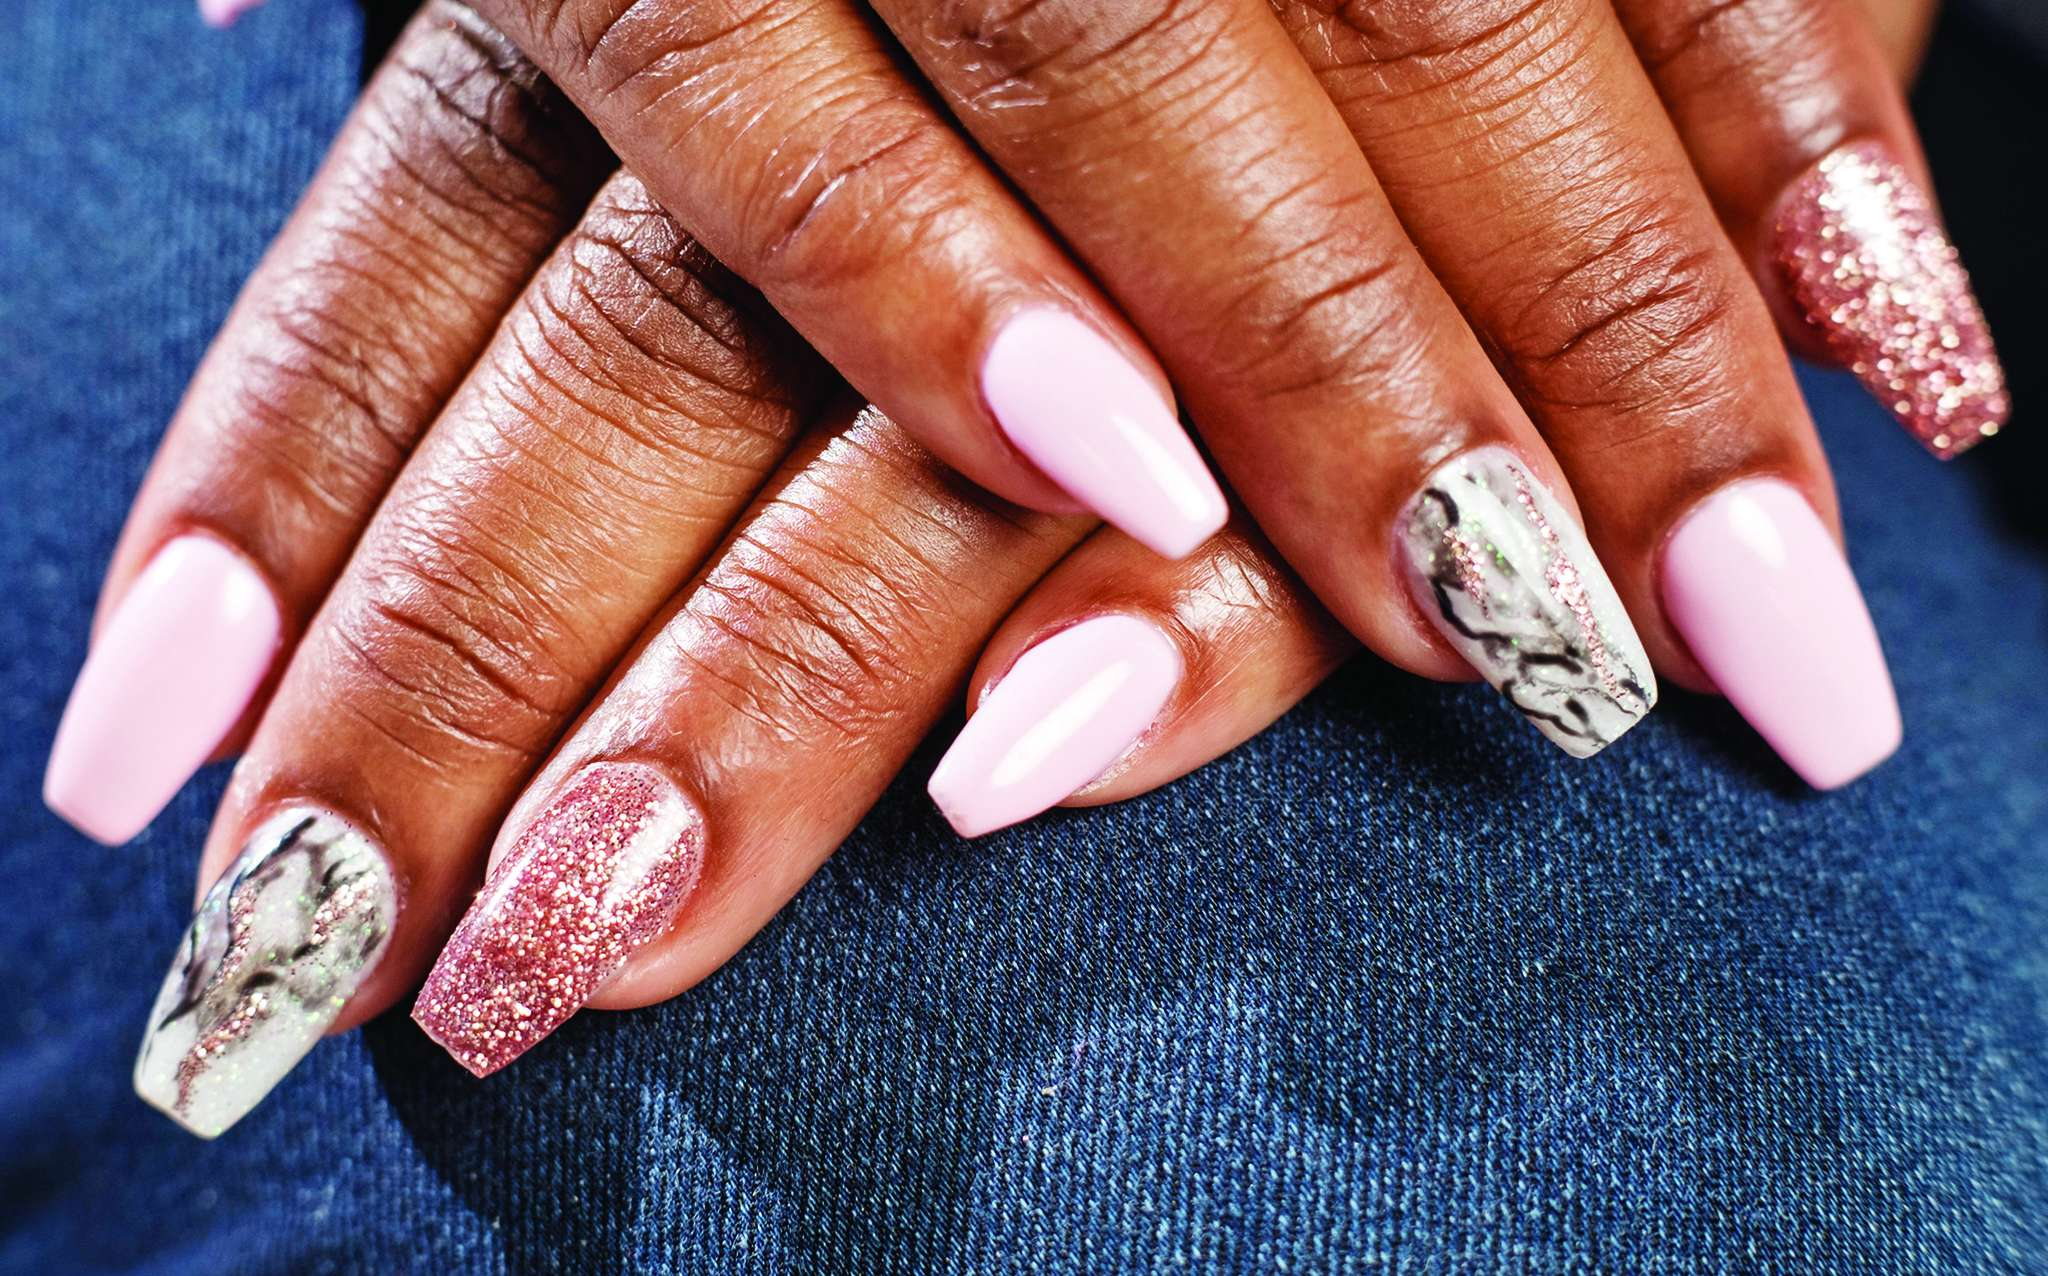 This hot nail trend is inspired by nature - Philly